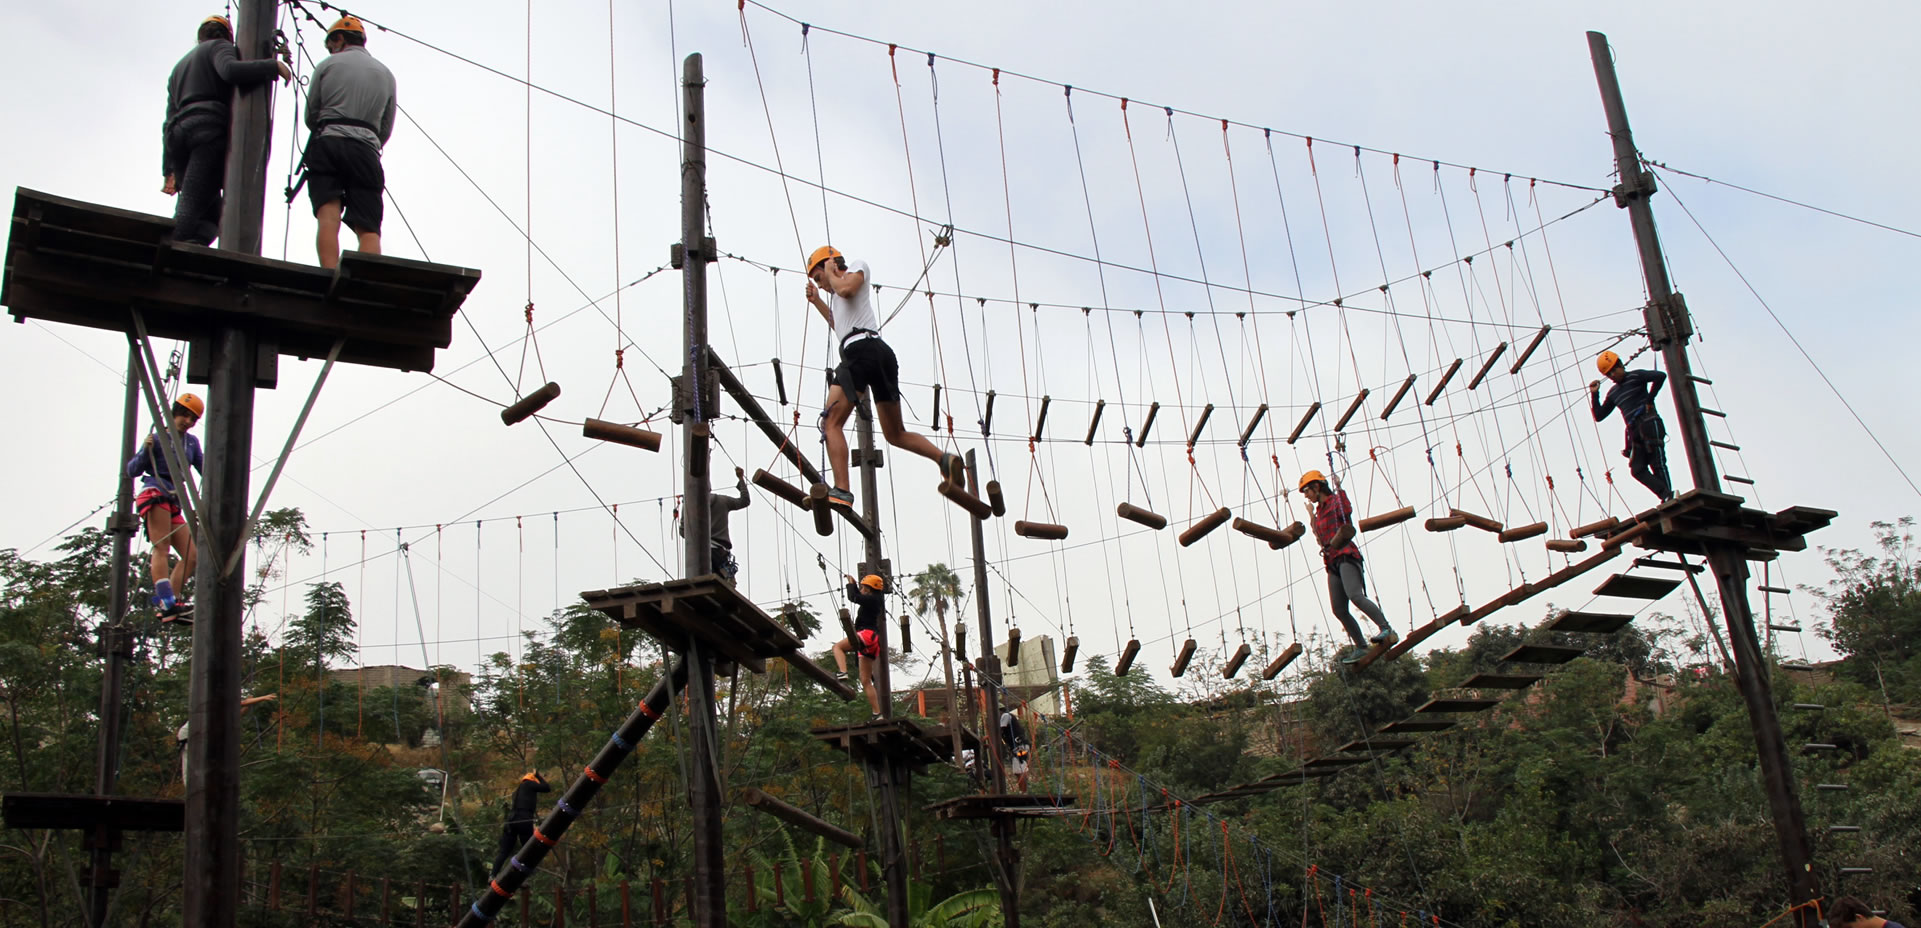 CAMPO DE CUERDAS / HIGH ROPE COURSES